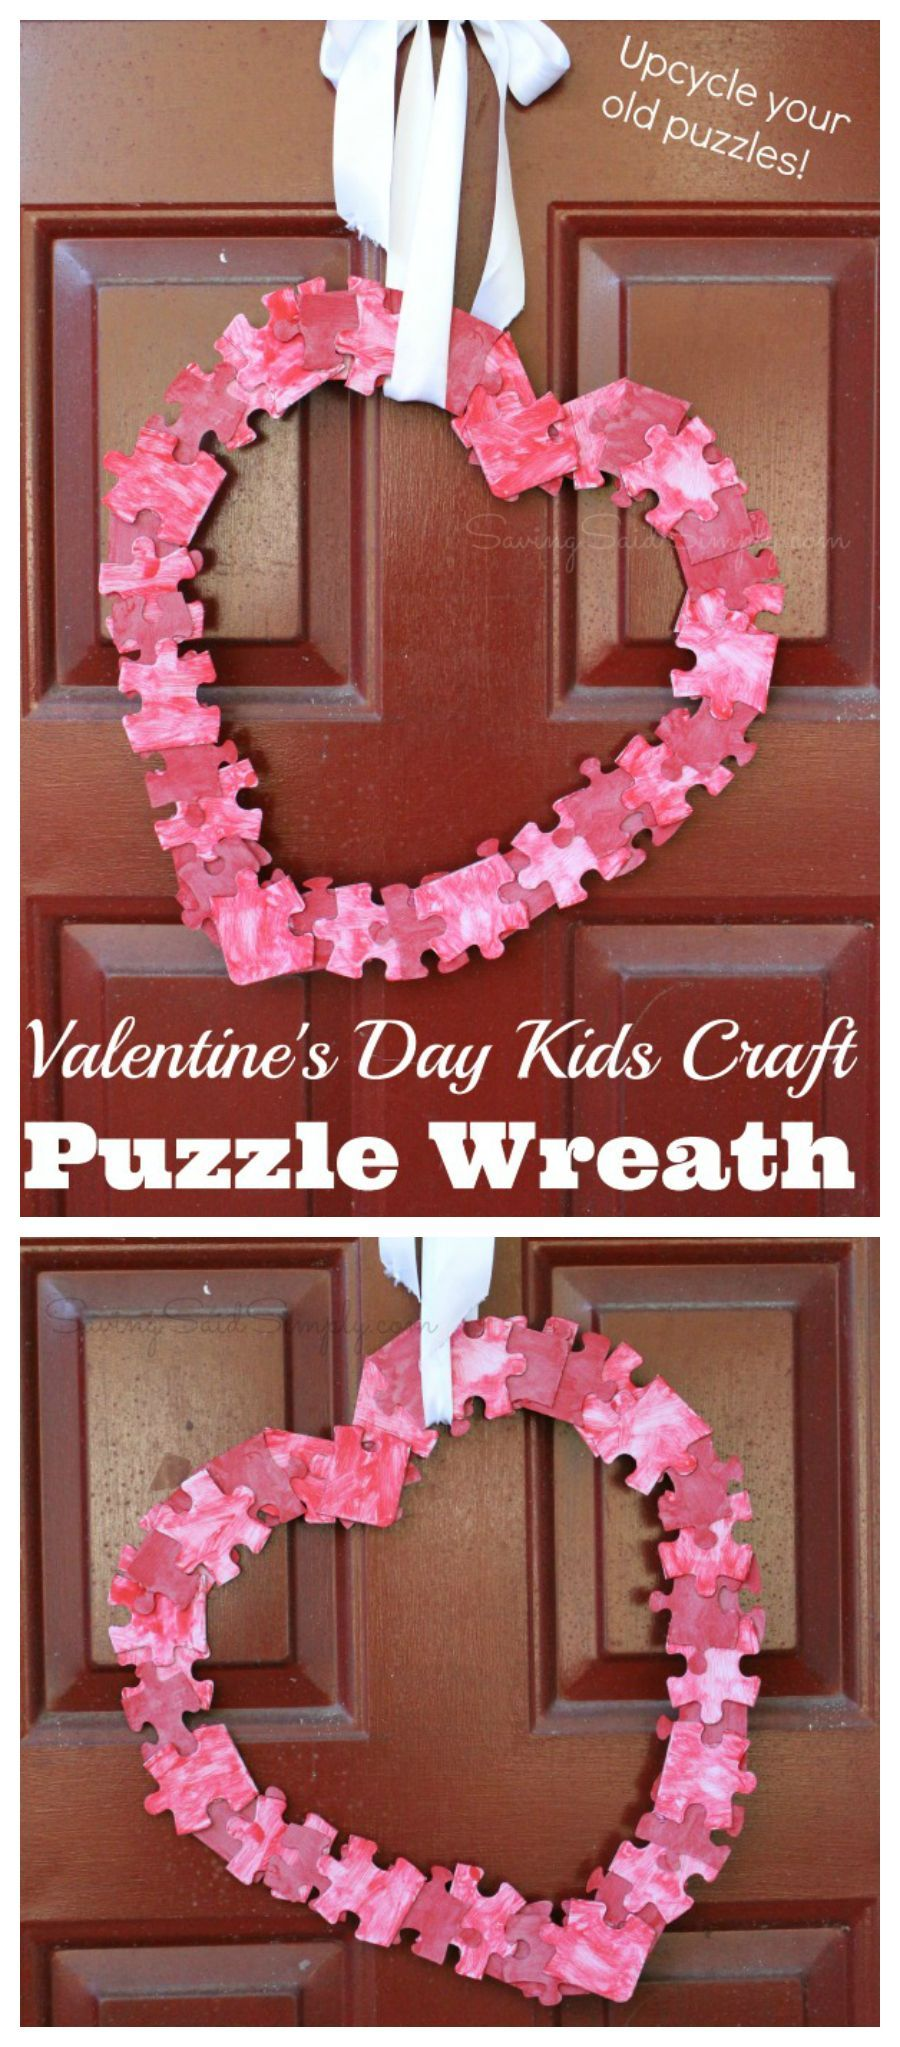 Valentines Day Kids Craft Puzzle Wreath Valentines Day Kids Craft Puzzle Wreath